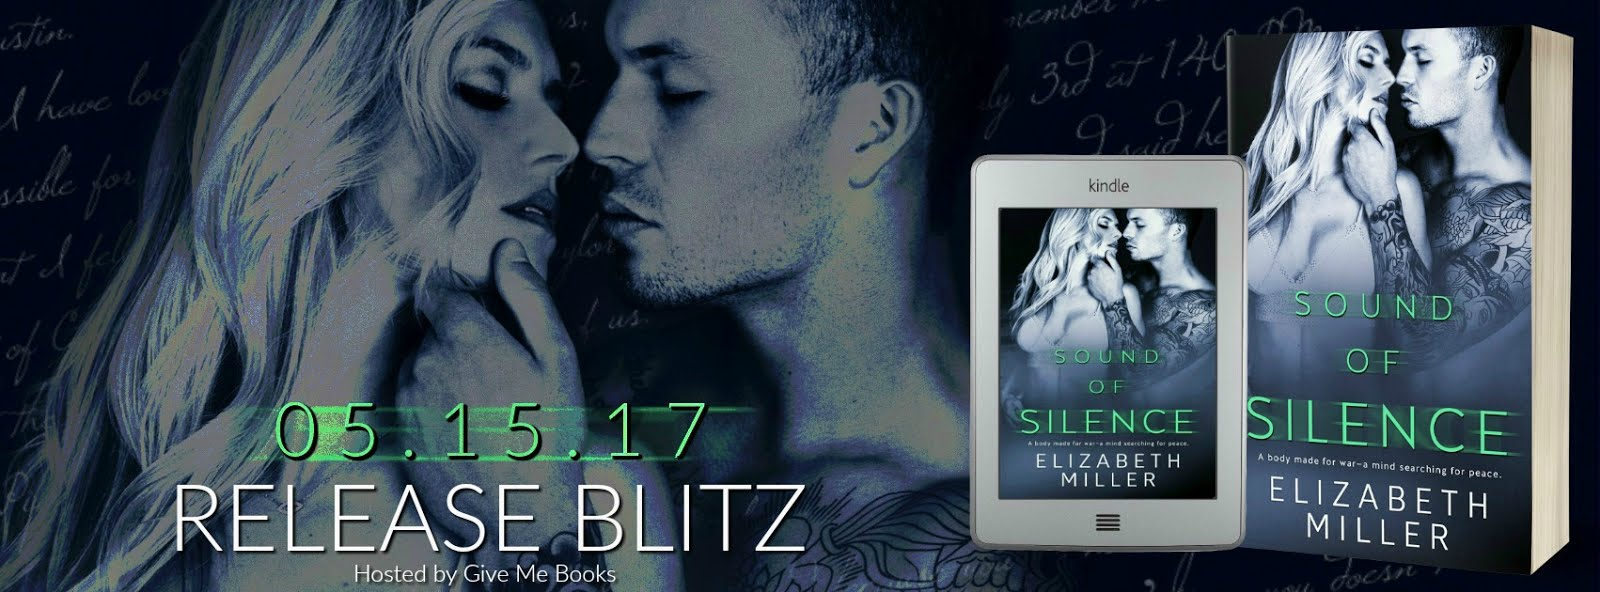 Sound of Silence Release Blitz